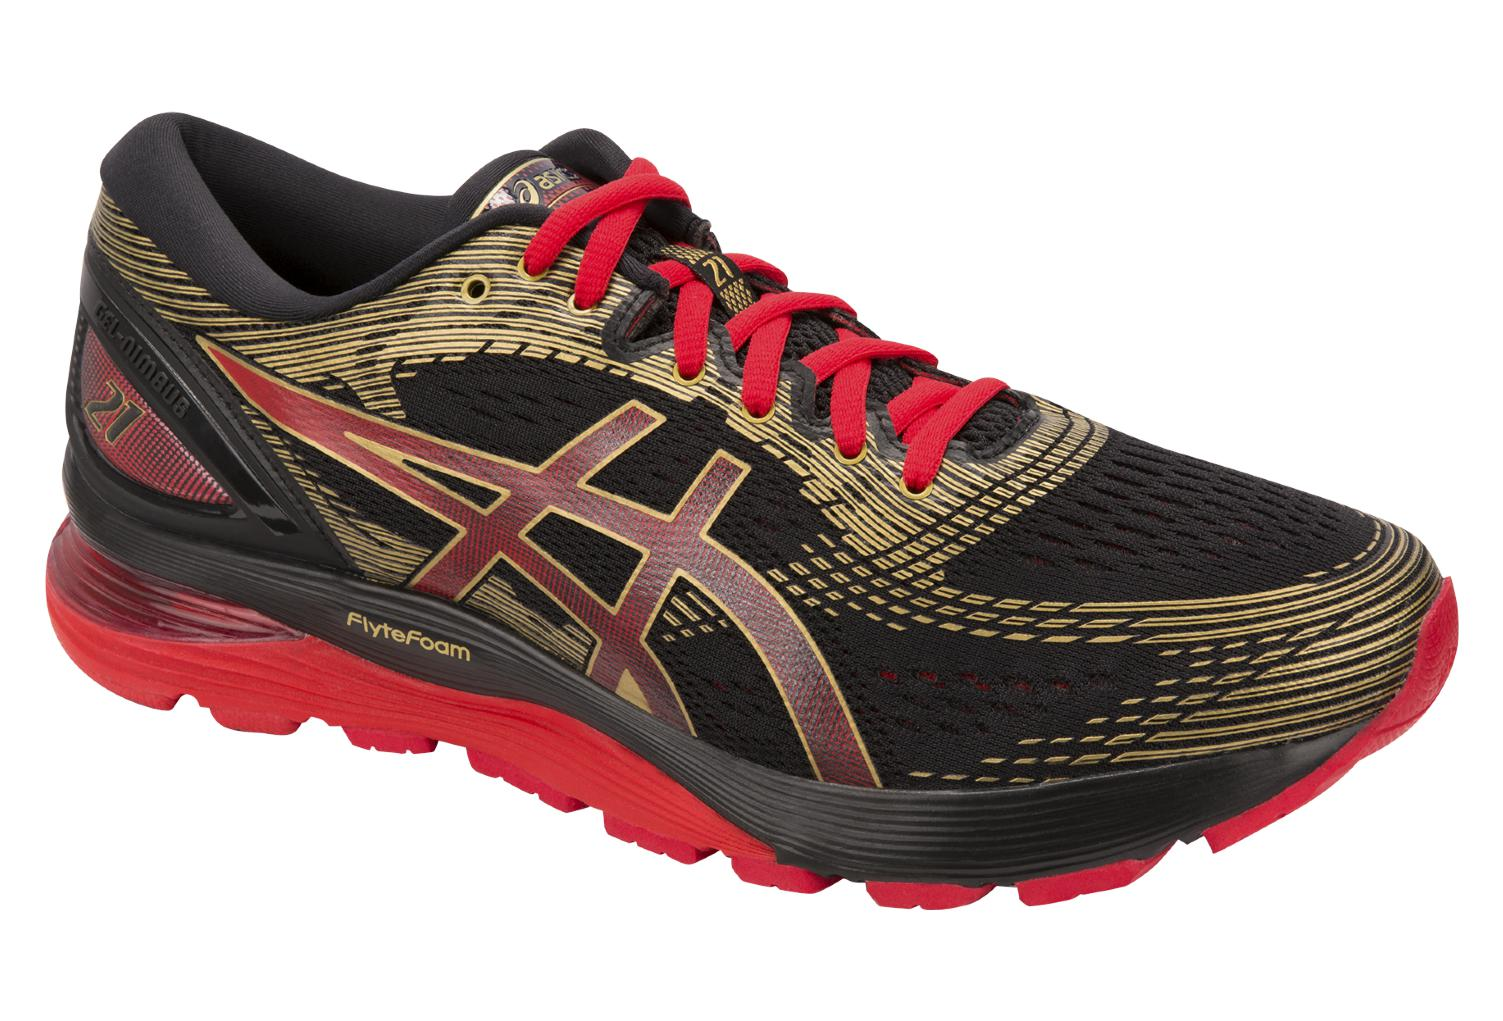 2f5ba4041ce Asics Shoes Run Gel Nimbus 21 MUGEN Black Red